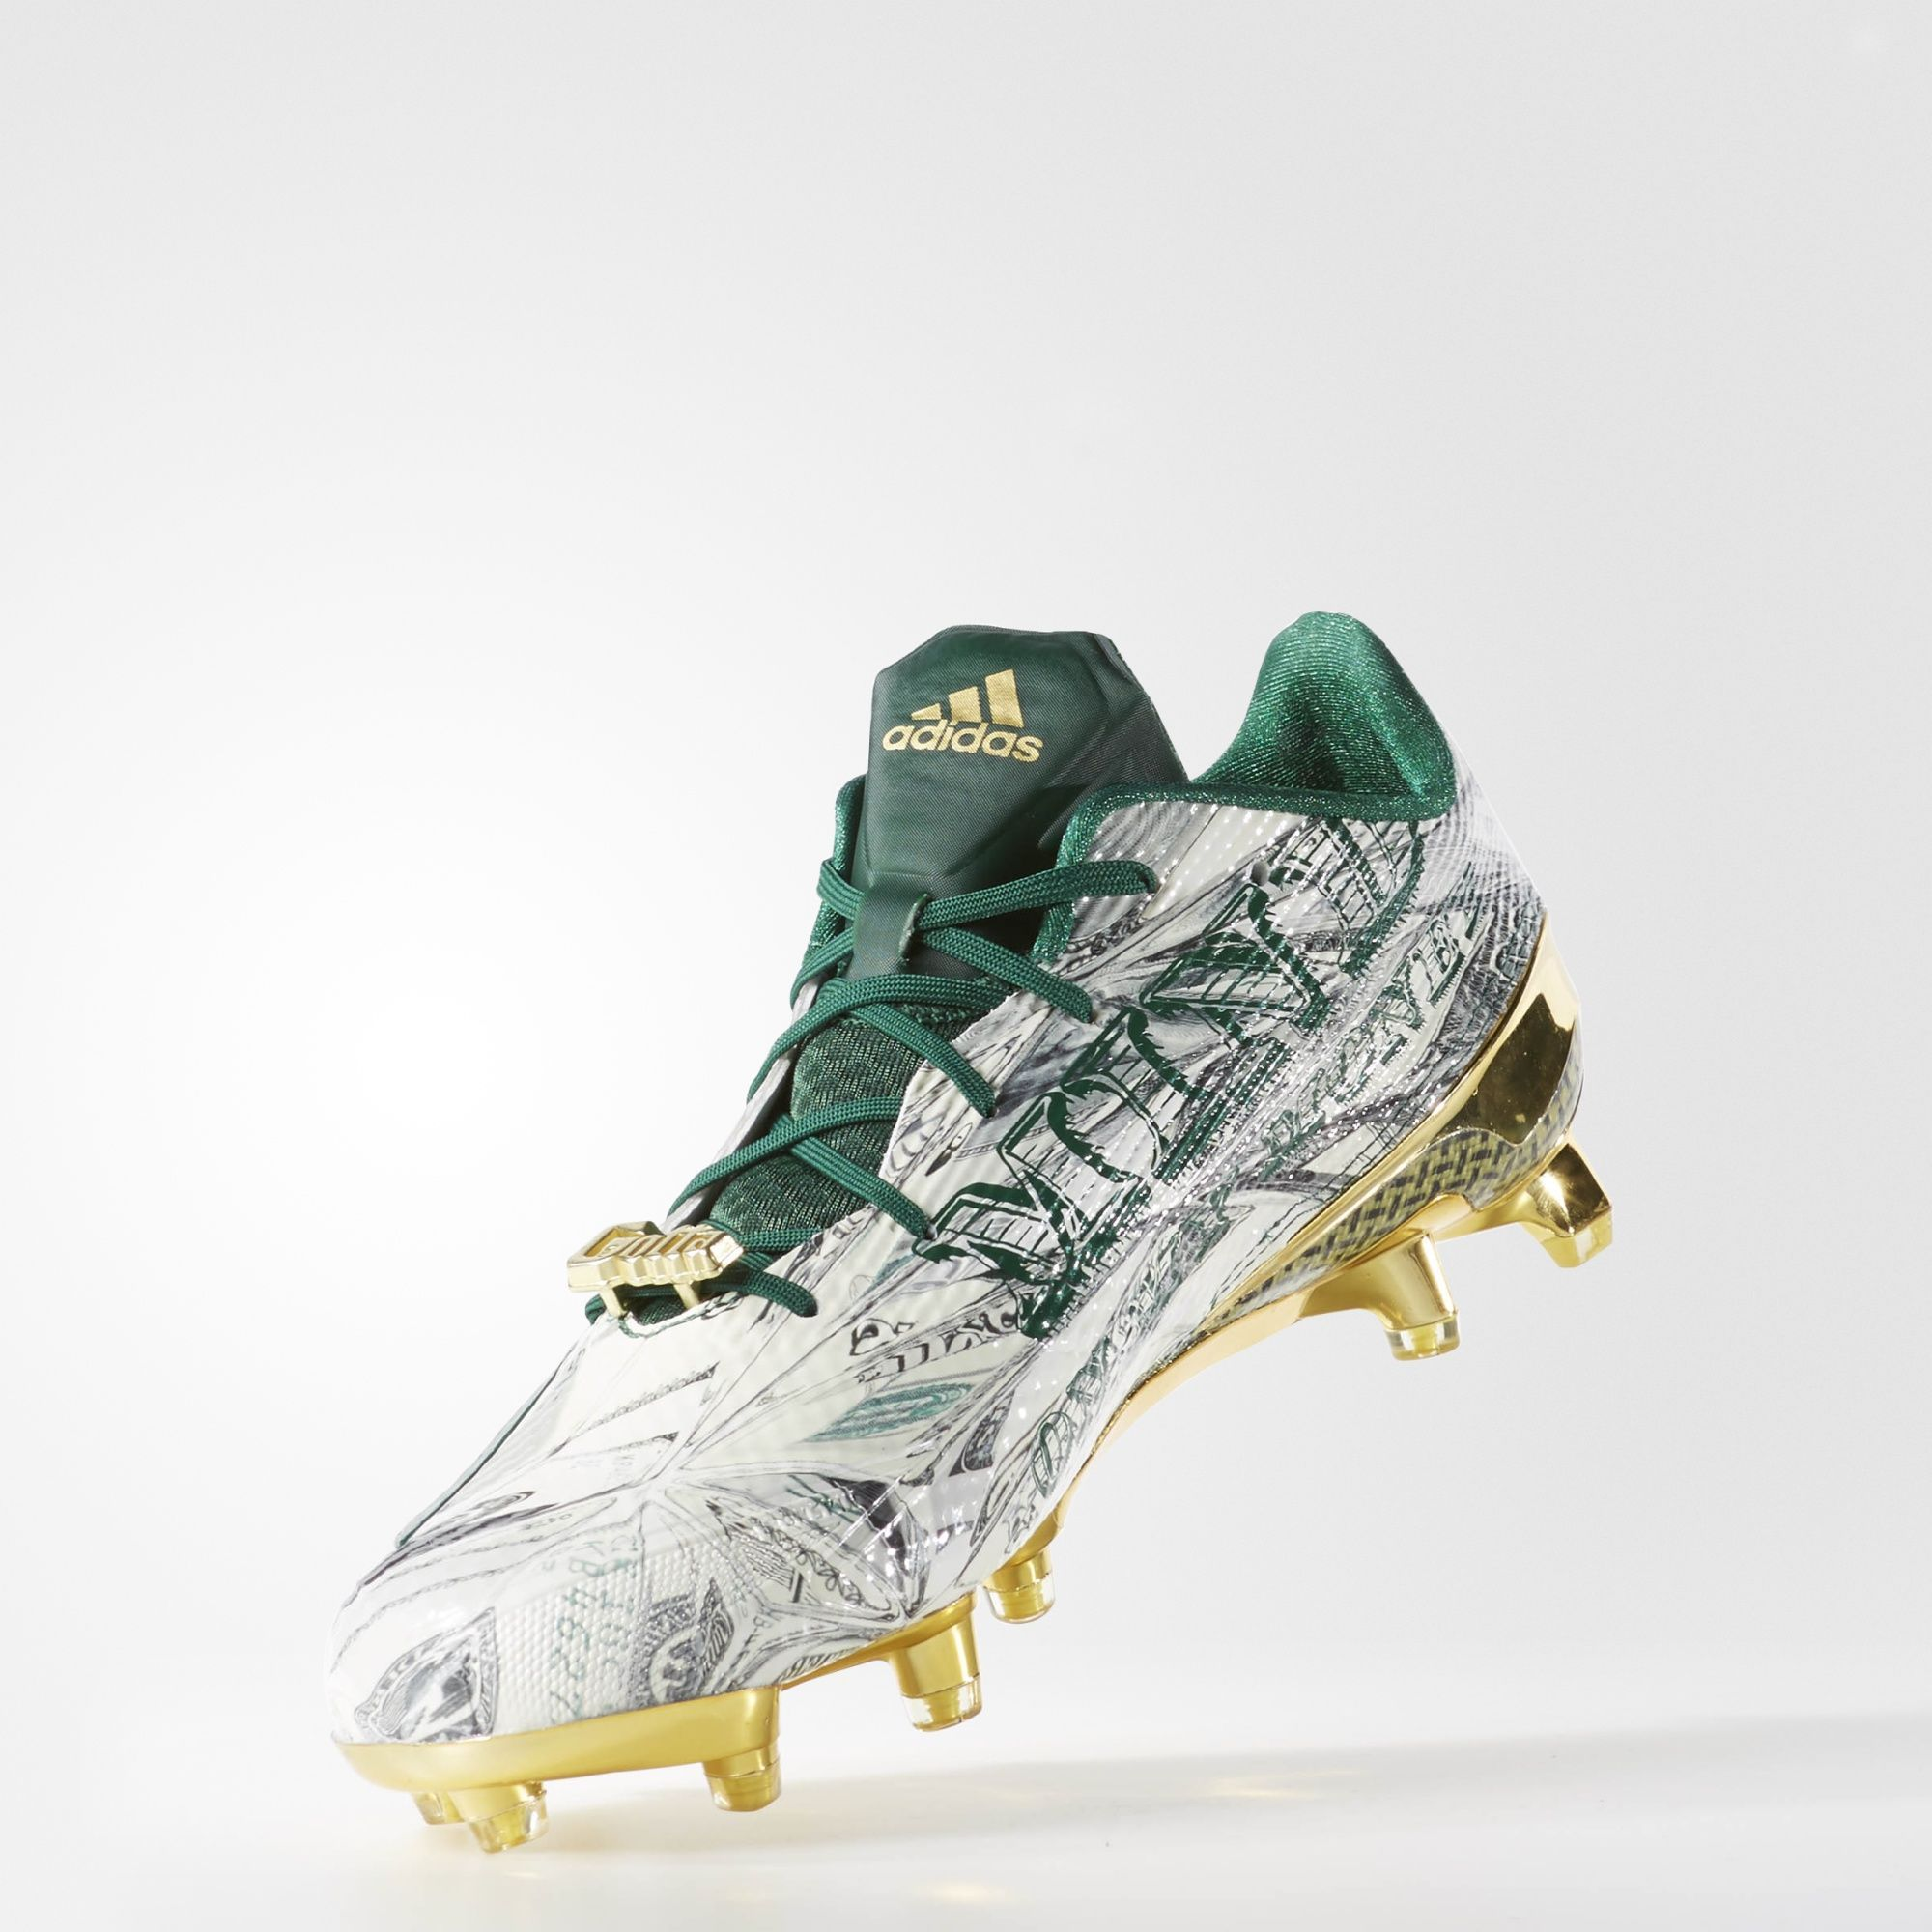 Snoop Dogg and Adidas Cleat